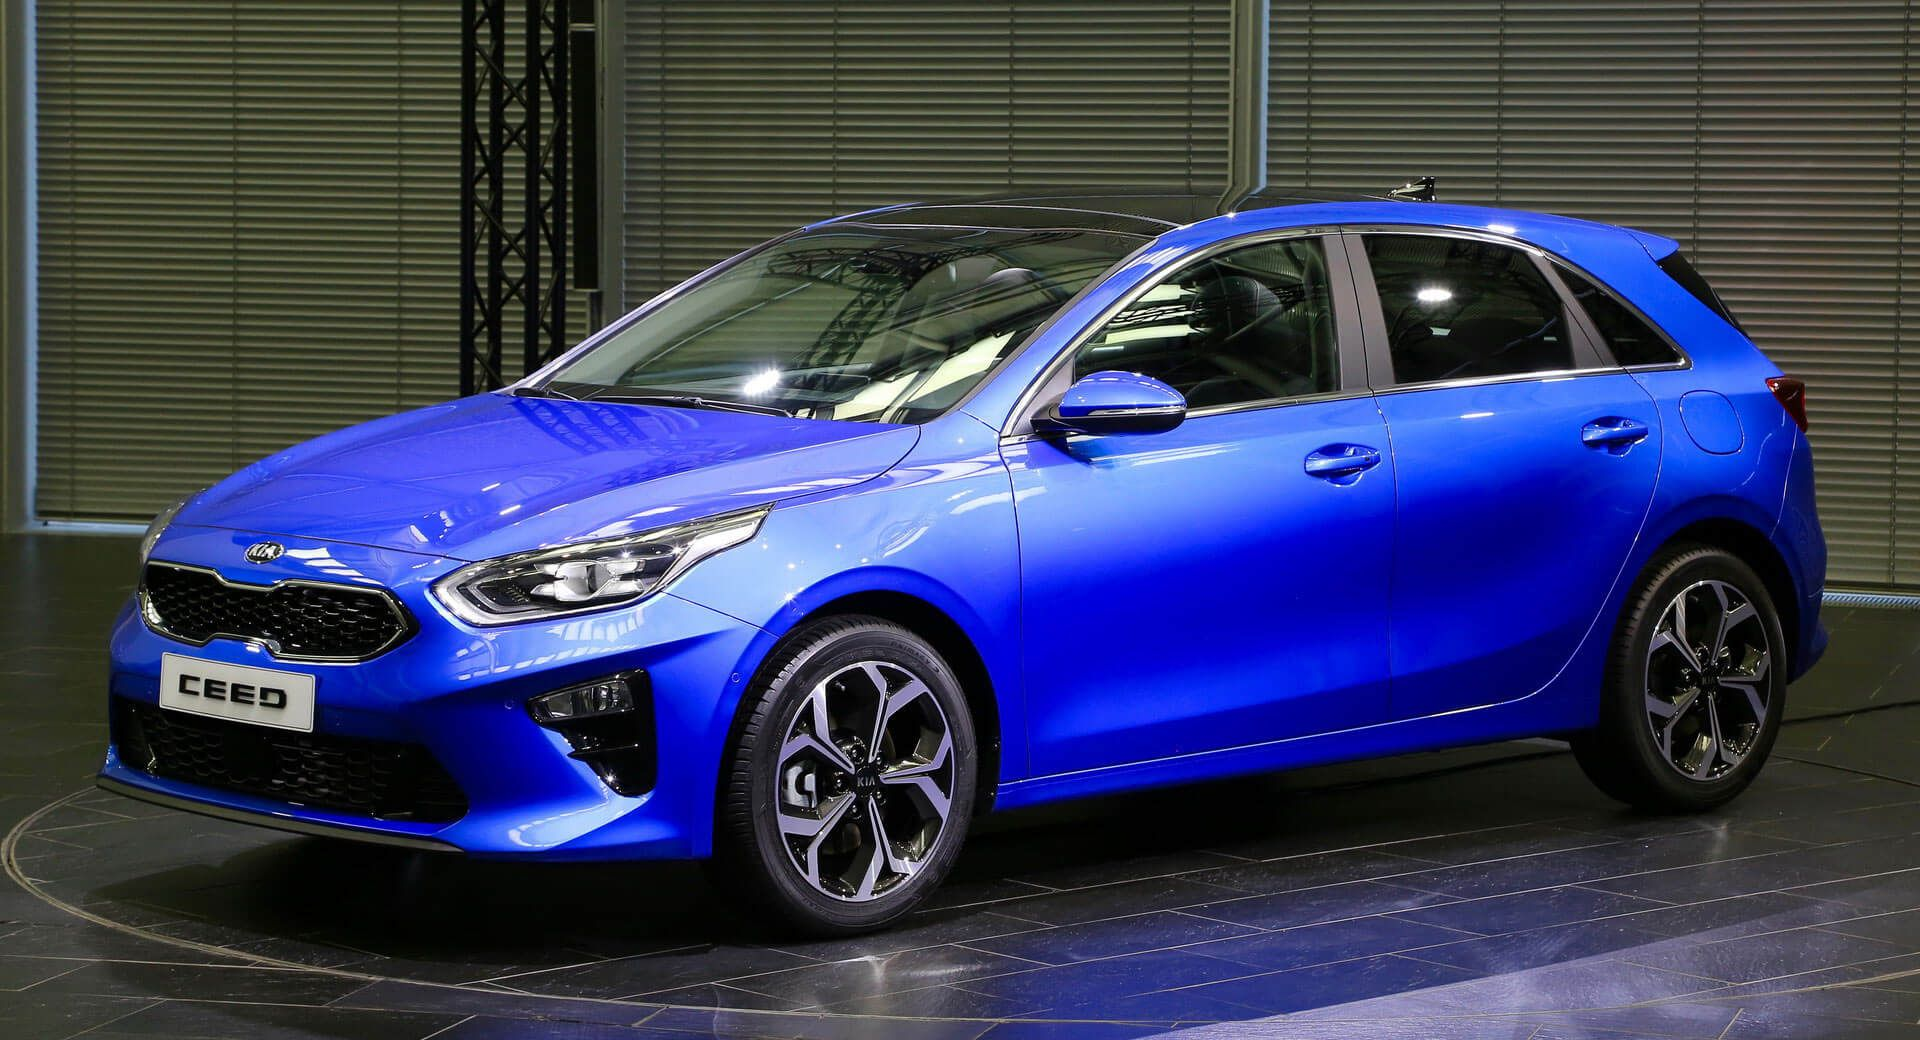 All New Kia Ceed Hatch Arrives In Geneva To Start A Fight With The Golf Carscoops Kia Ceed Kia Rio Kia Forte